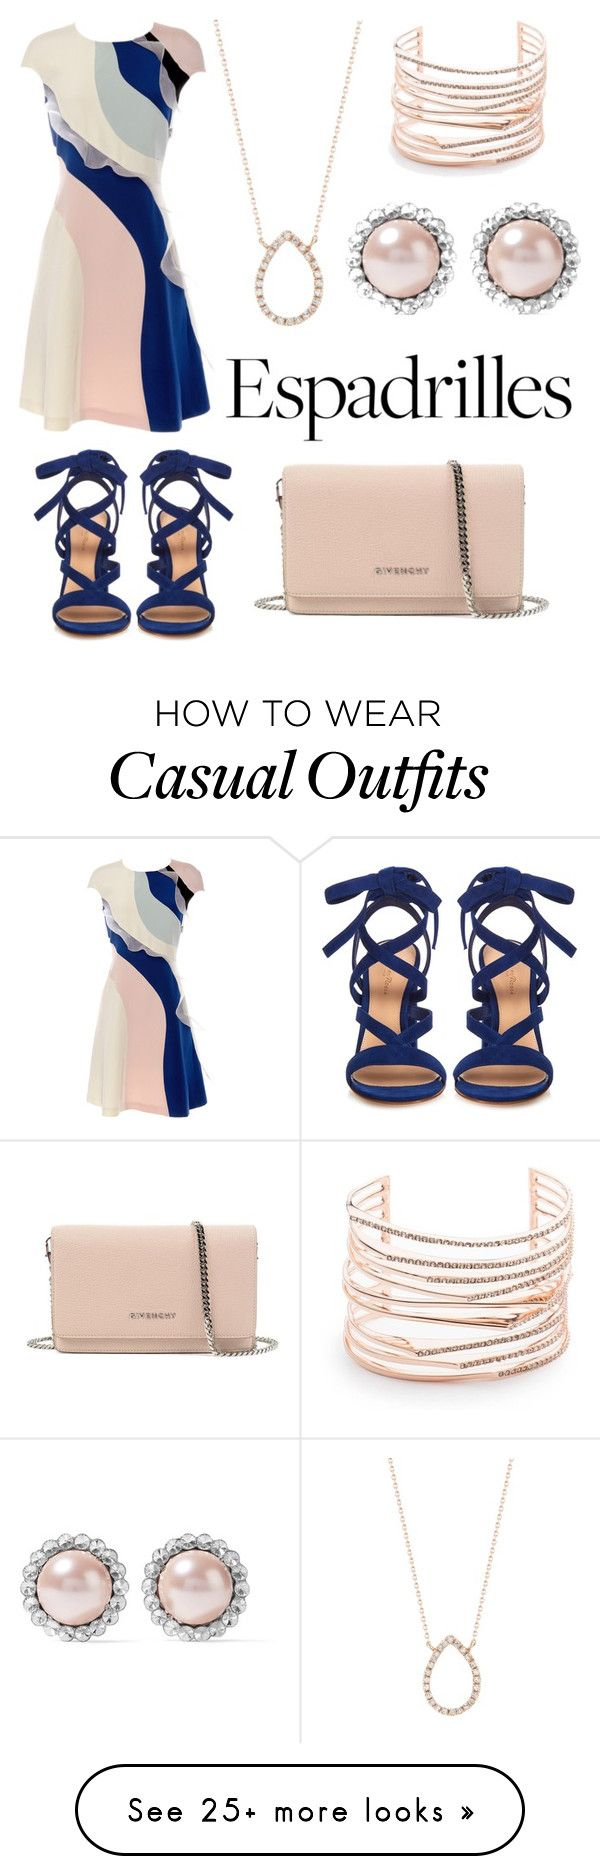 """Business casual espadrilles"" by swettypie on Polyvore featuring Dana Rebecca Designs, HUISHAN ZHANG, Gianvito Rossi, Givenchy, Miu Miu and Alexis Bittar"